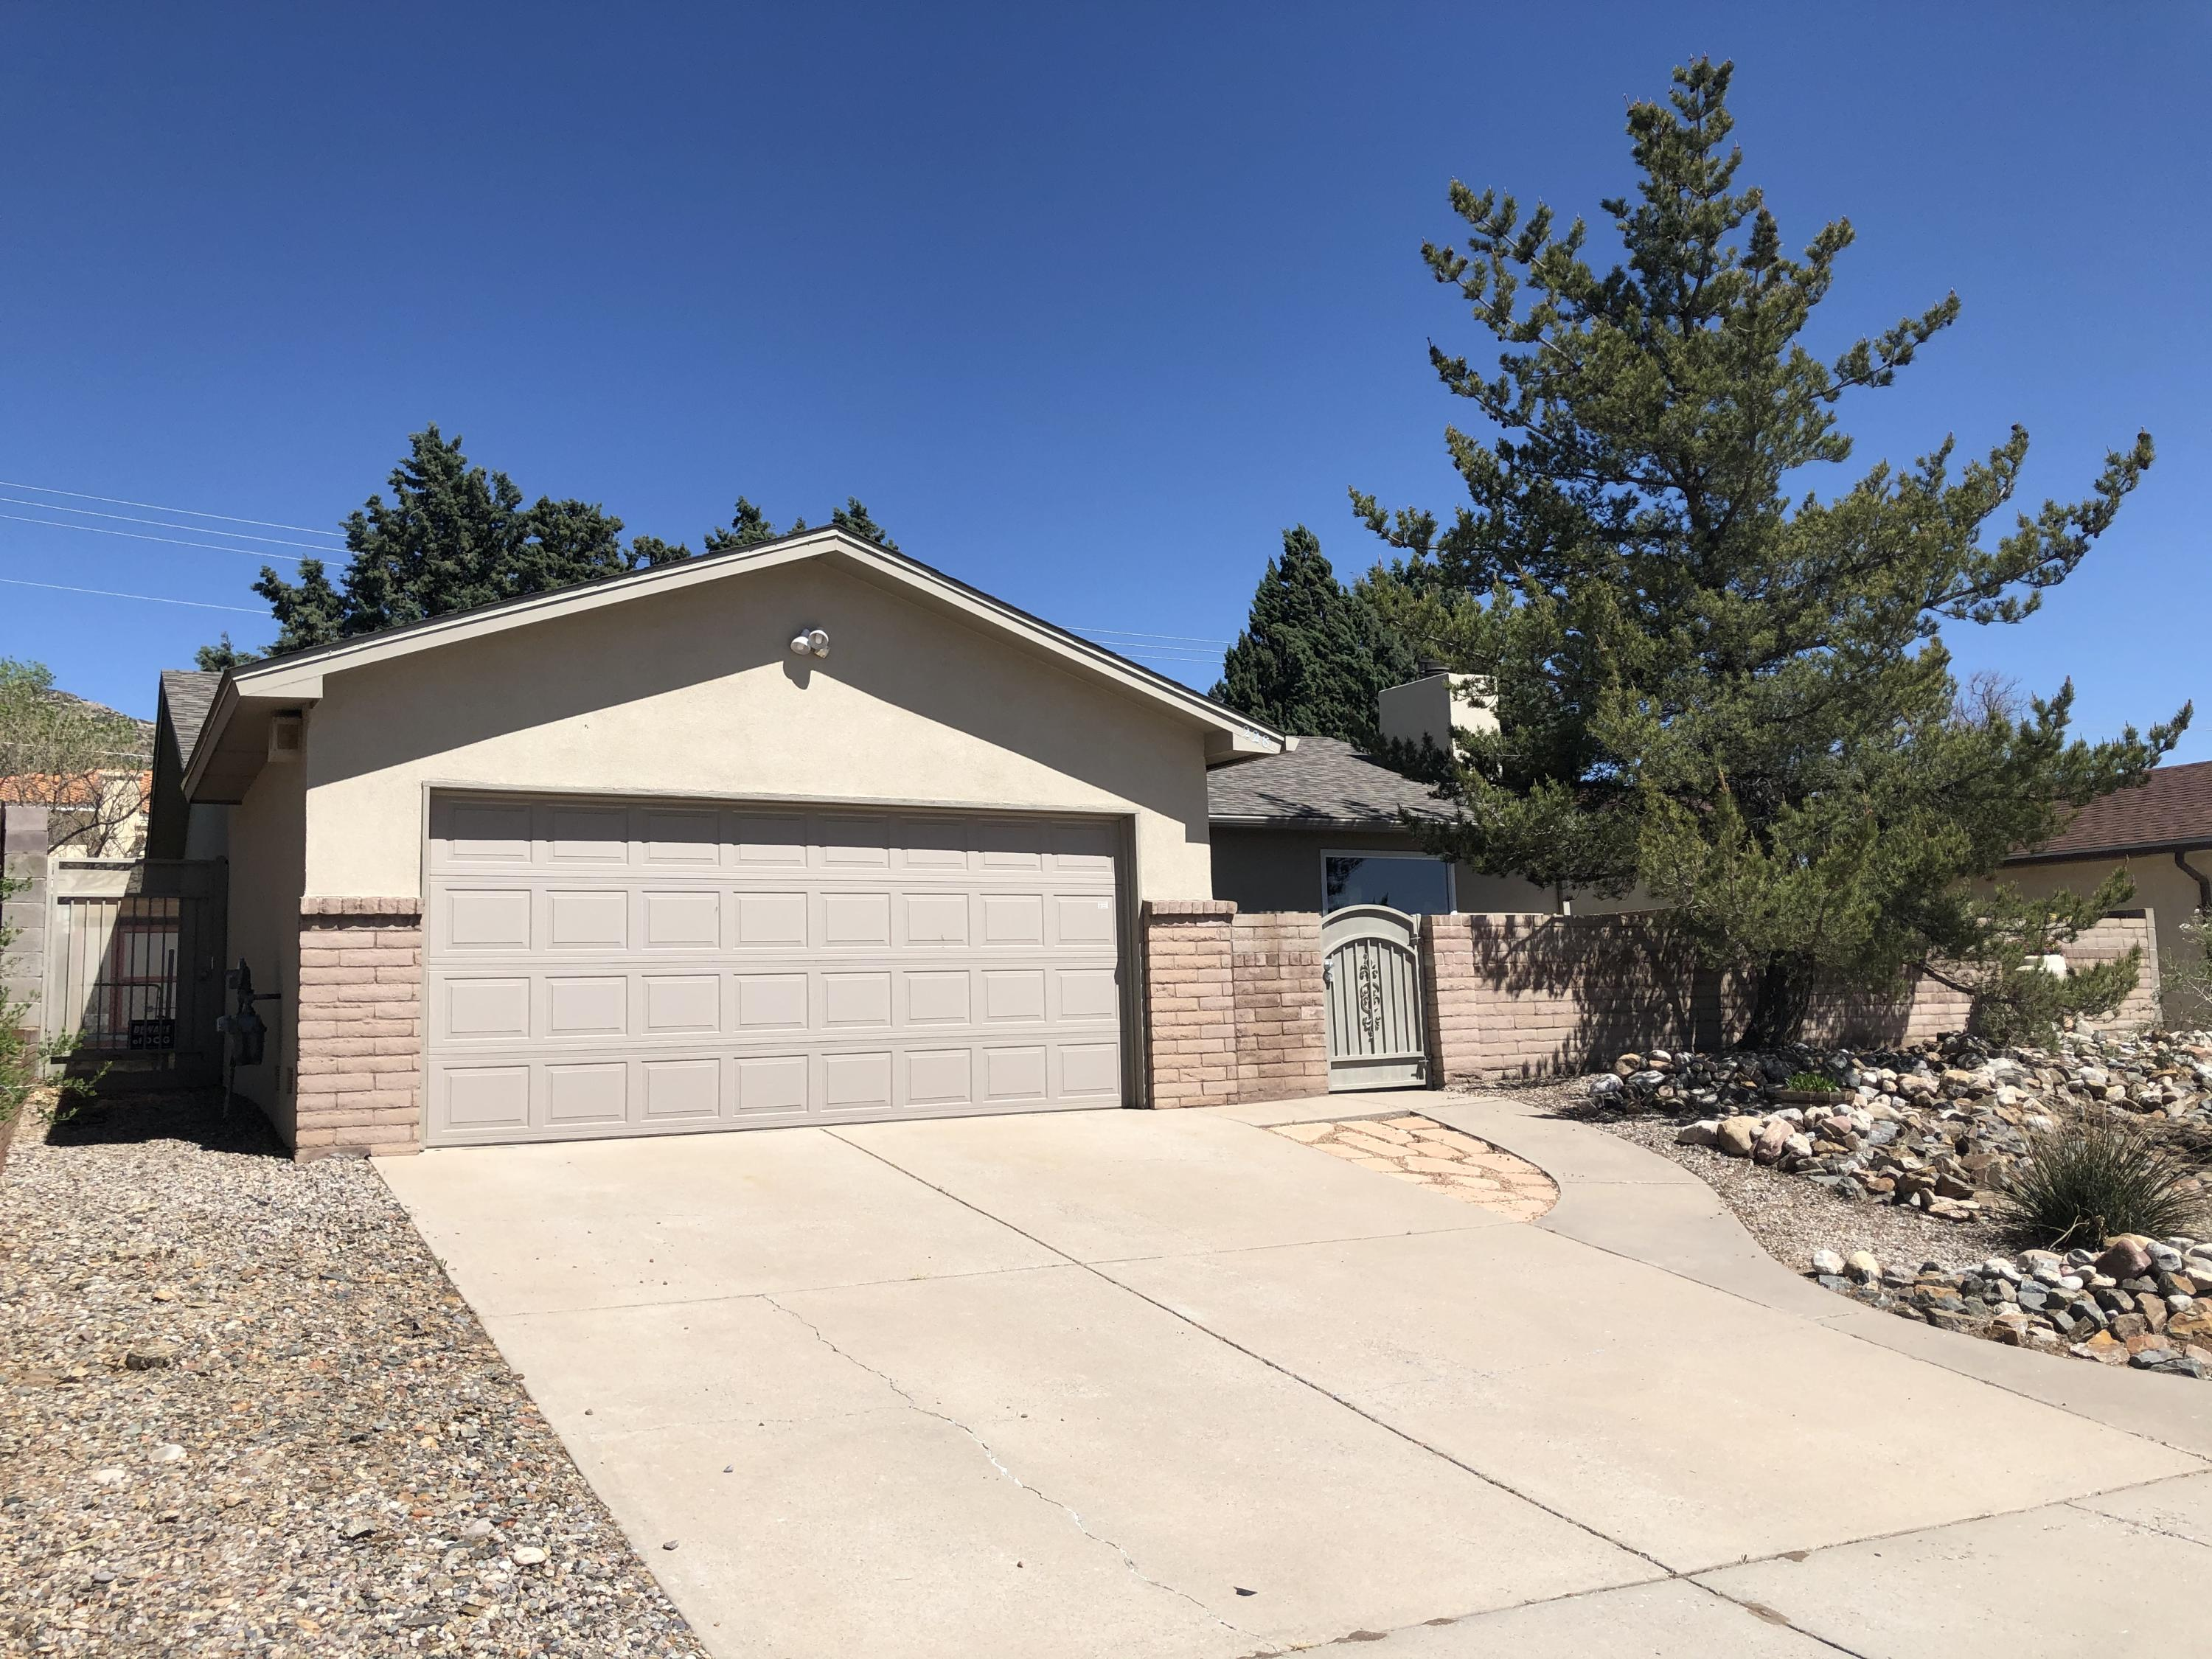 Well cared for home with 3 year old roof and stucco. New laminate floors. Backyard is a perfect getaway with the cover patio and separate first and grilling area. Large shed and work bench in Garage. Beautiful sunset views from the front courtyard. Come see this charming home today.